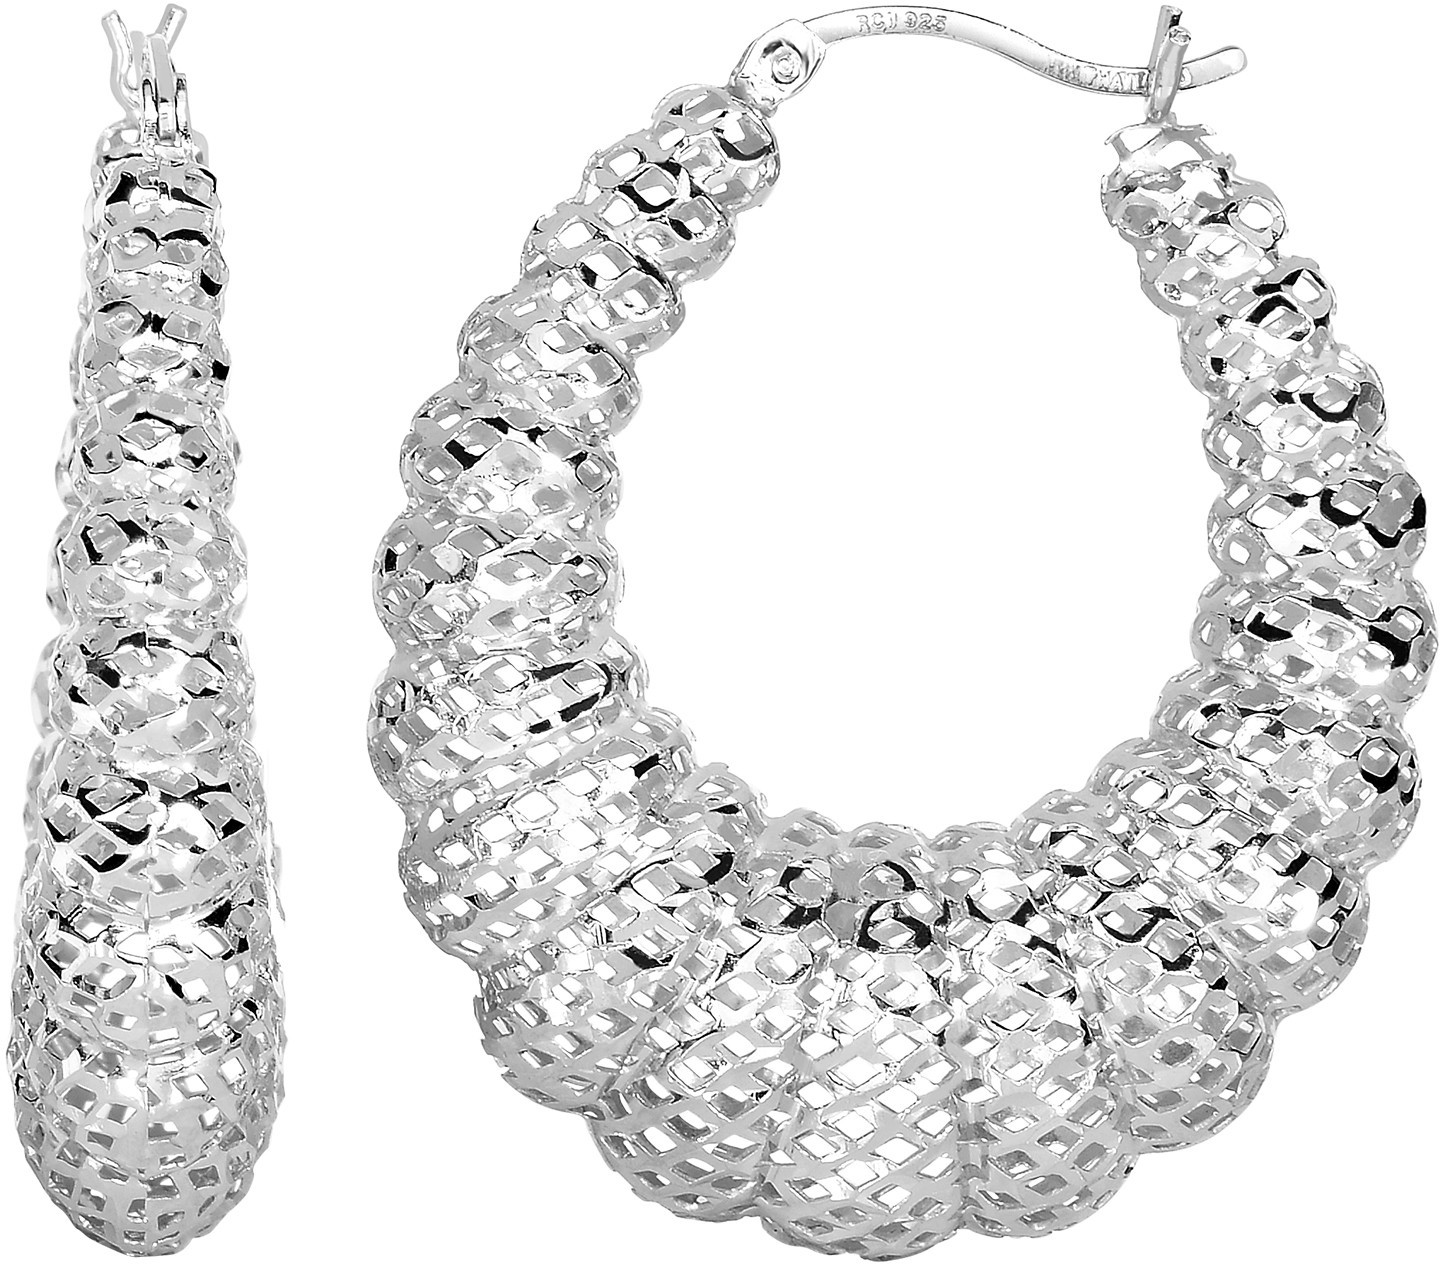 Silver Rhodium Plated Stampato Mesh Hoop Earrings (BTAGE1797) - DISCONTINUED